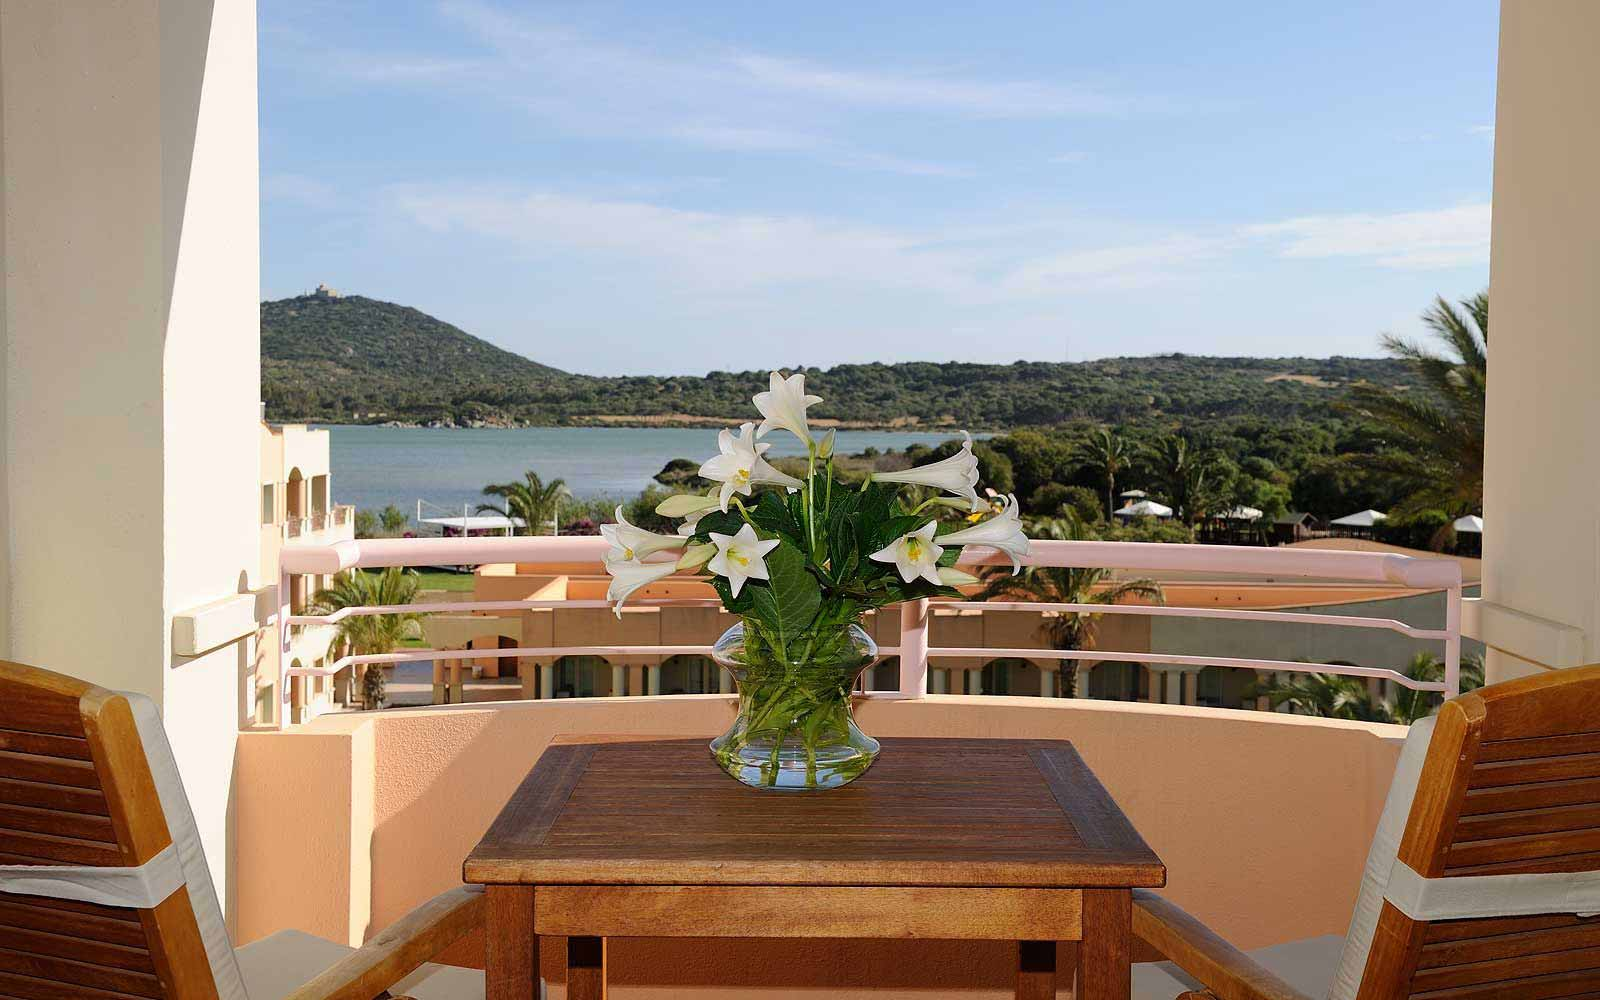 Terrace of Bayside Room at Pullman Timi Ama Sardegna